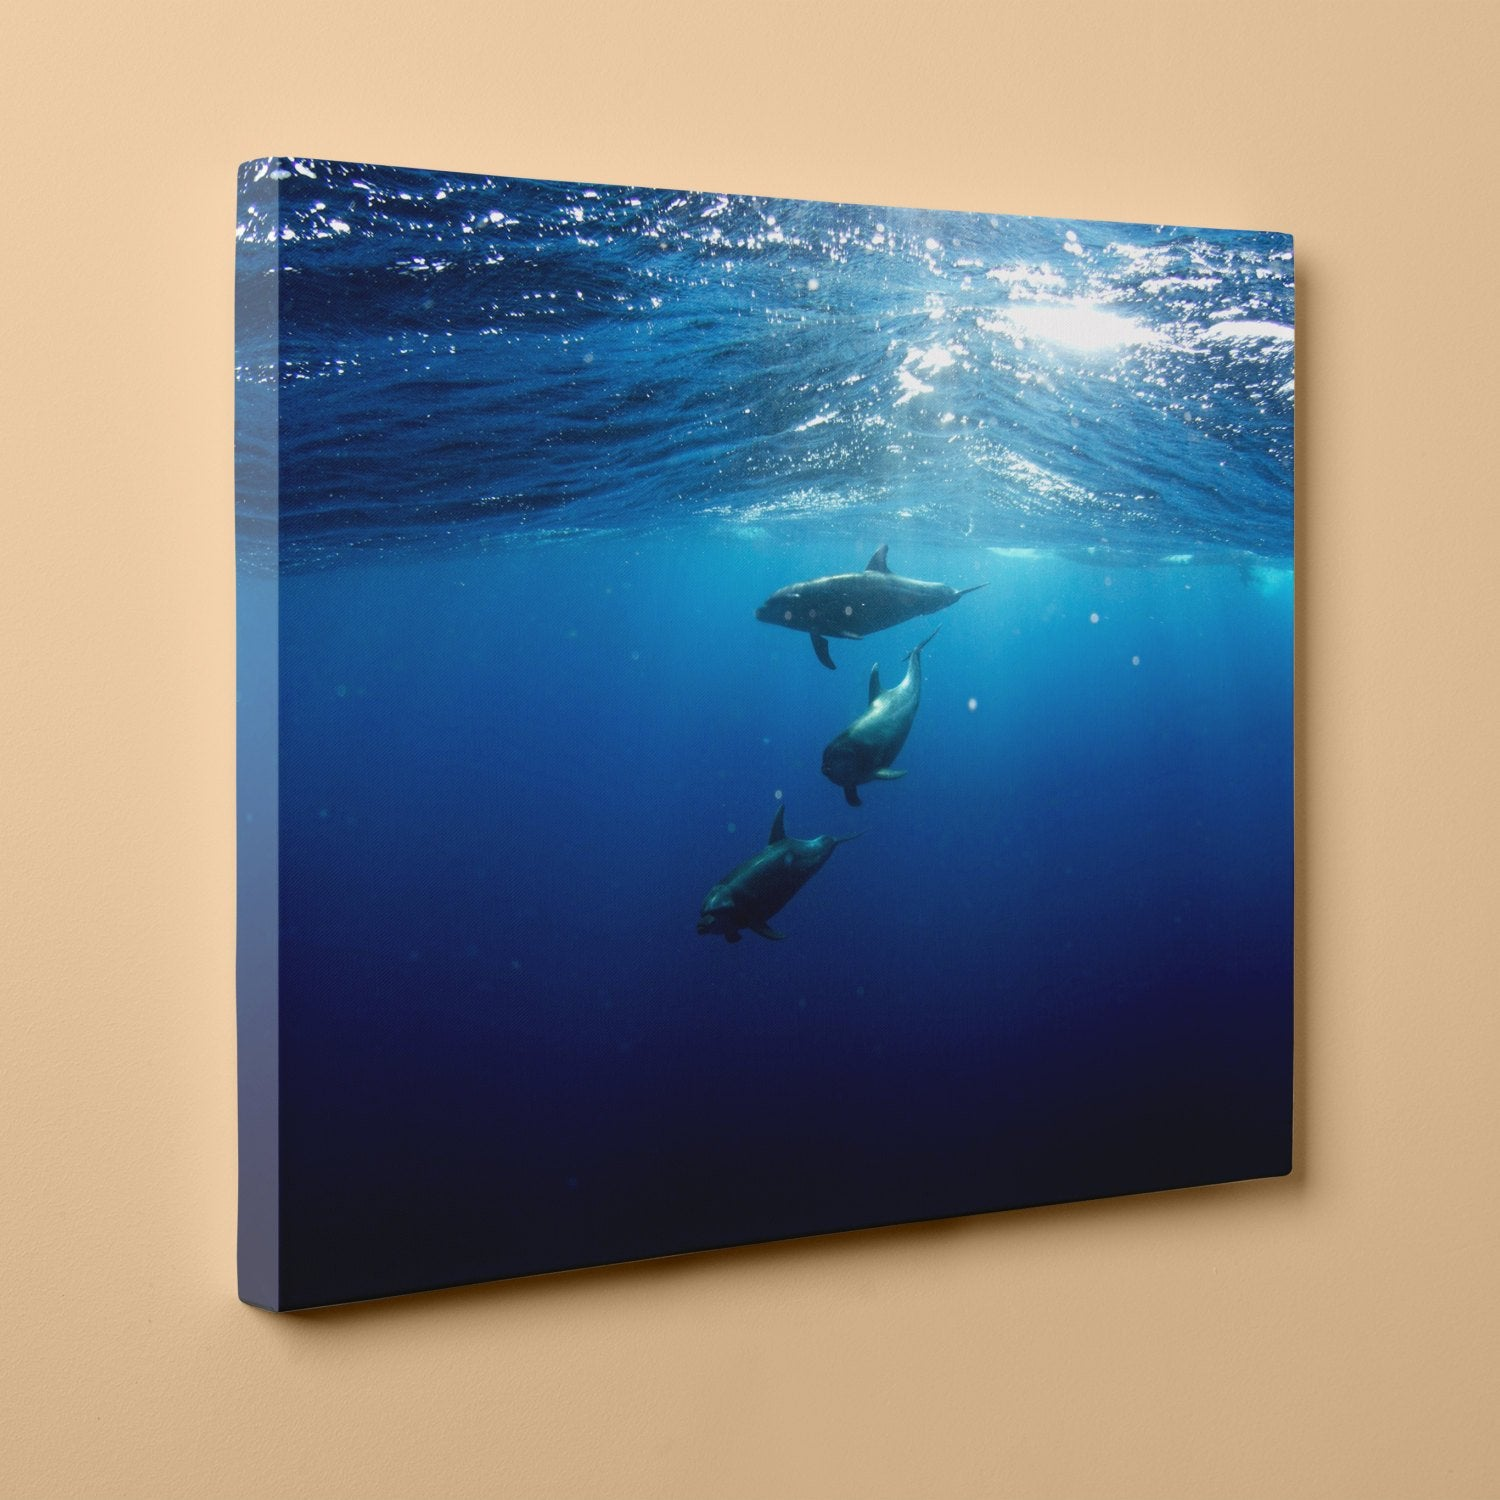 "Dolphins Diving Under (16"" x 20"") - Canvas Wrap Print"